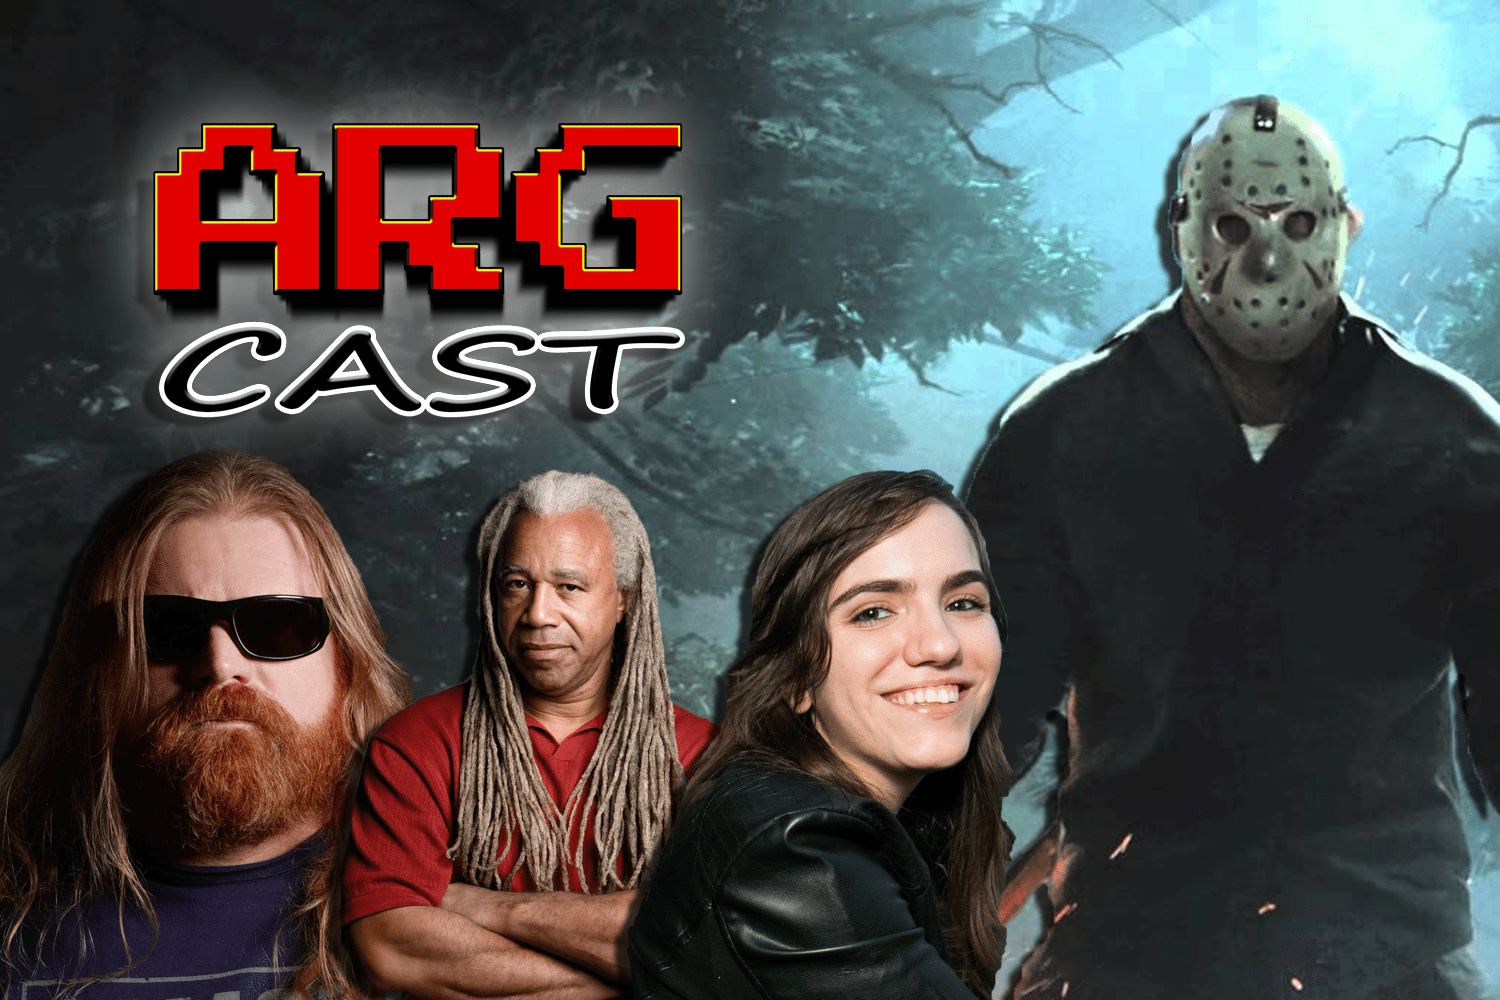 ARGcast #29: Friday the 13th and PS2 Anniversary with Randy Greenback